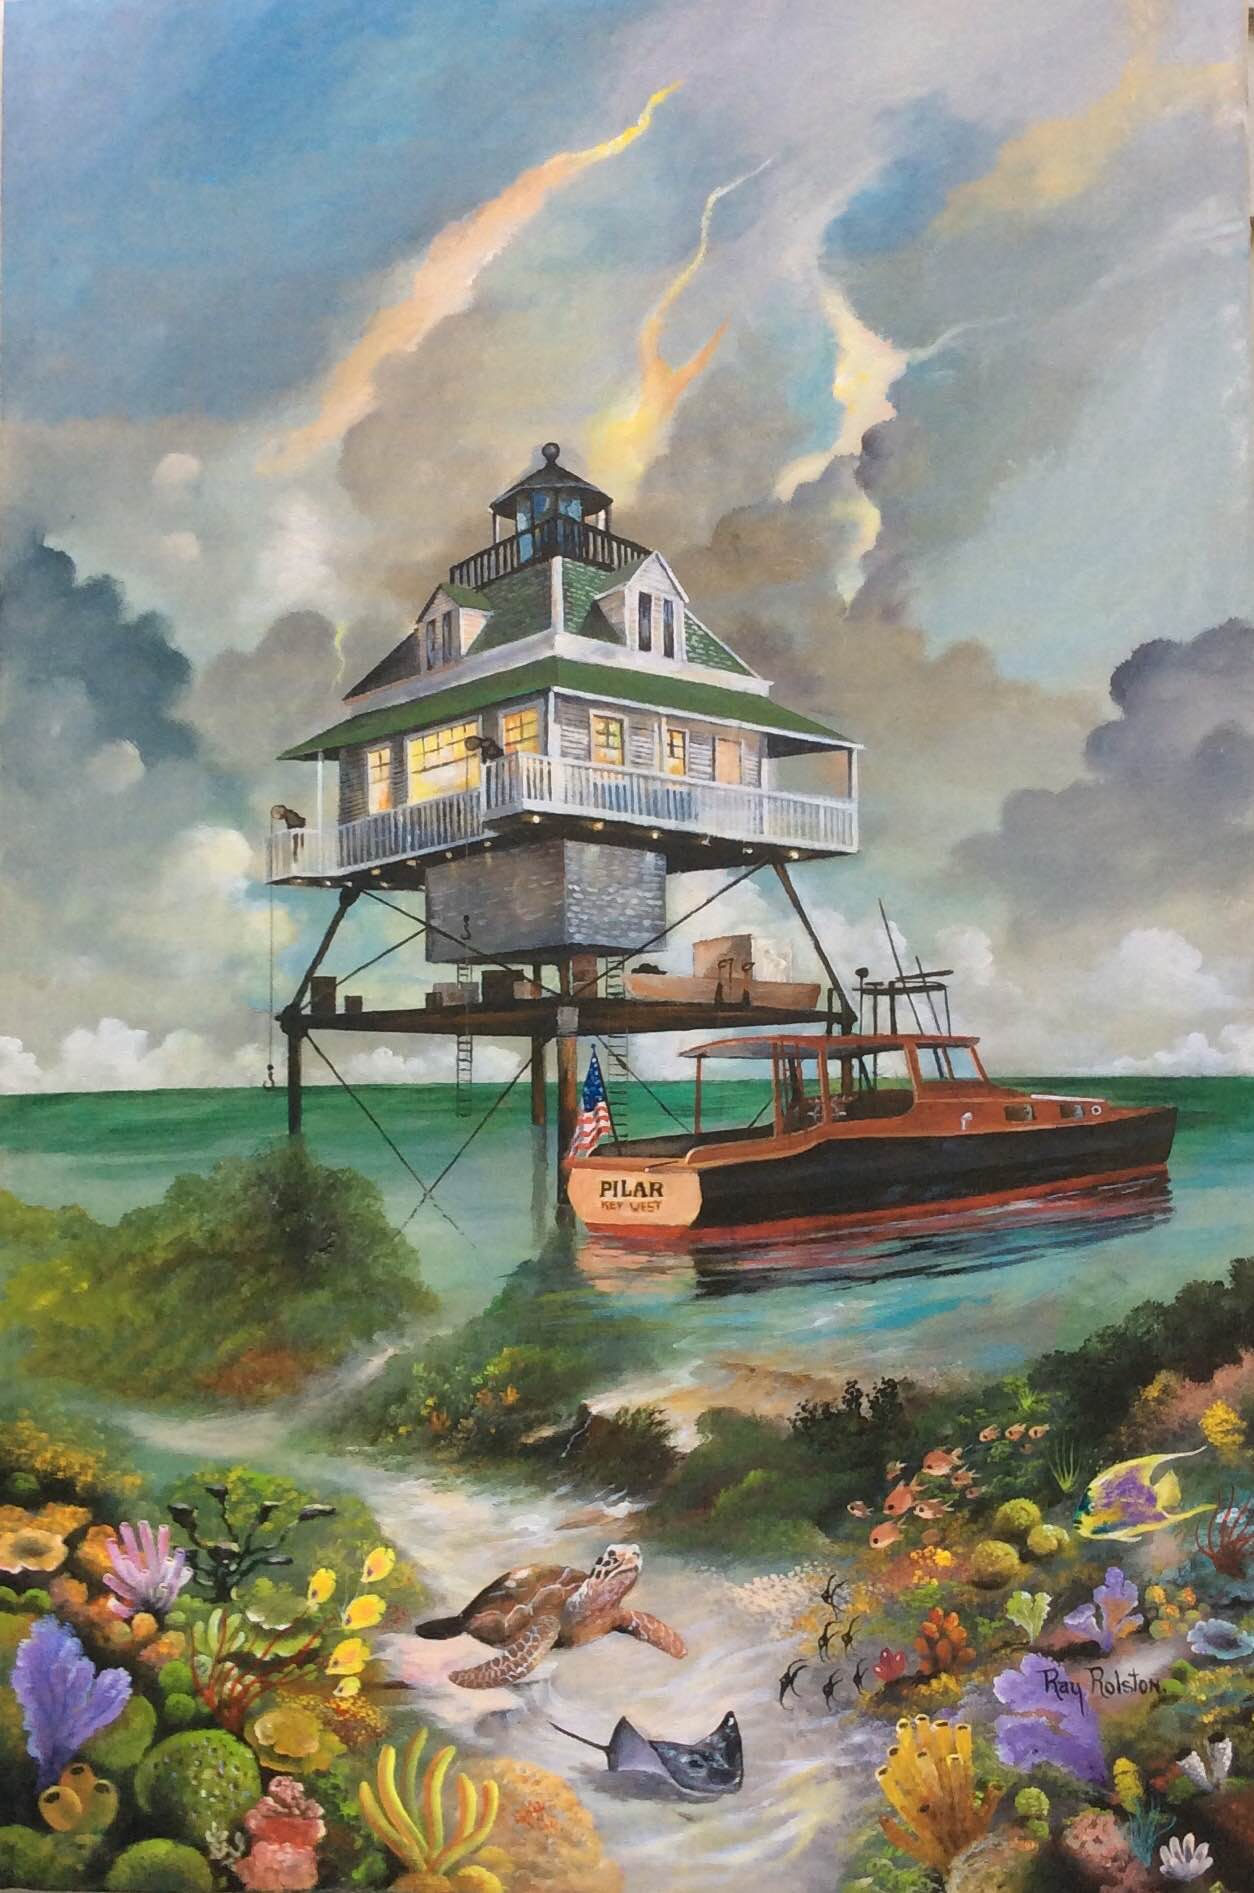 Hemingway Lighthouuse with Pilar – The Art Of Ray Rolston